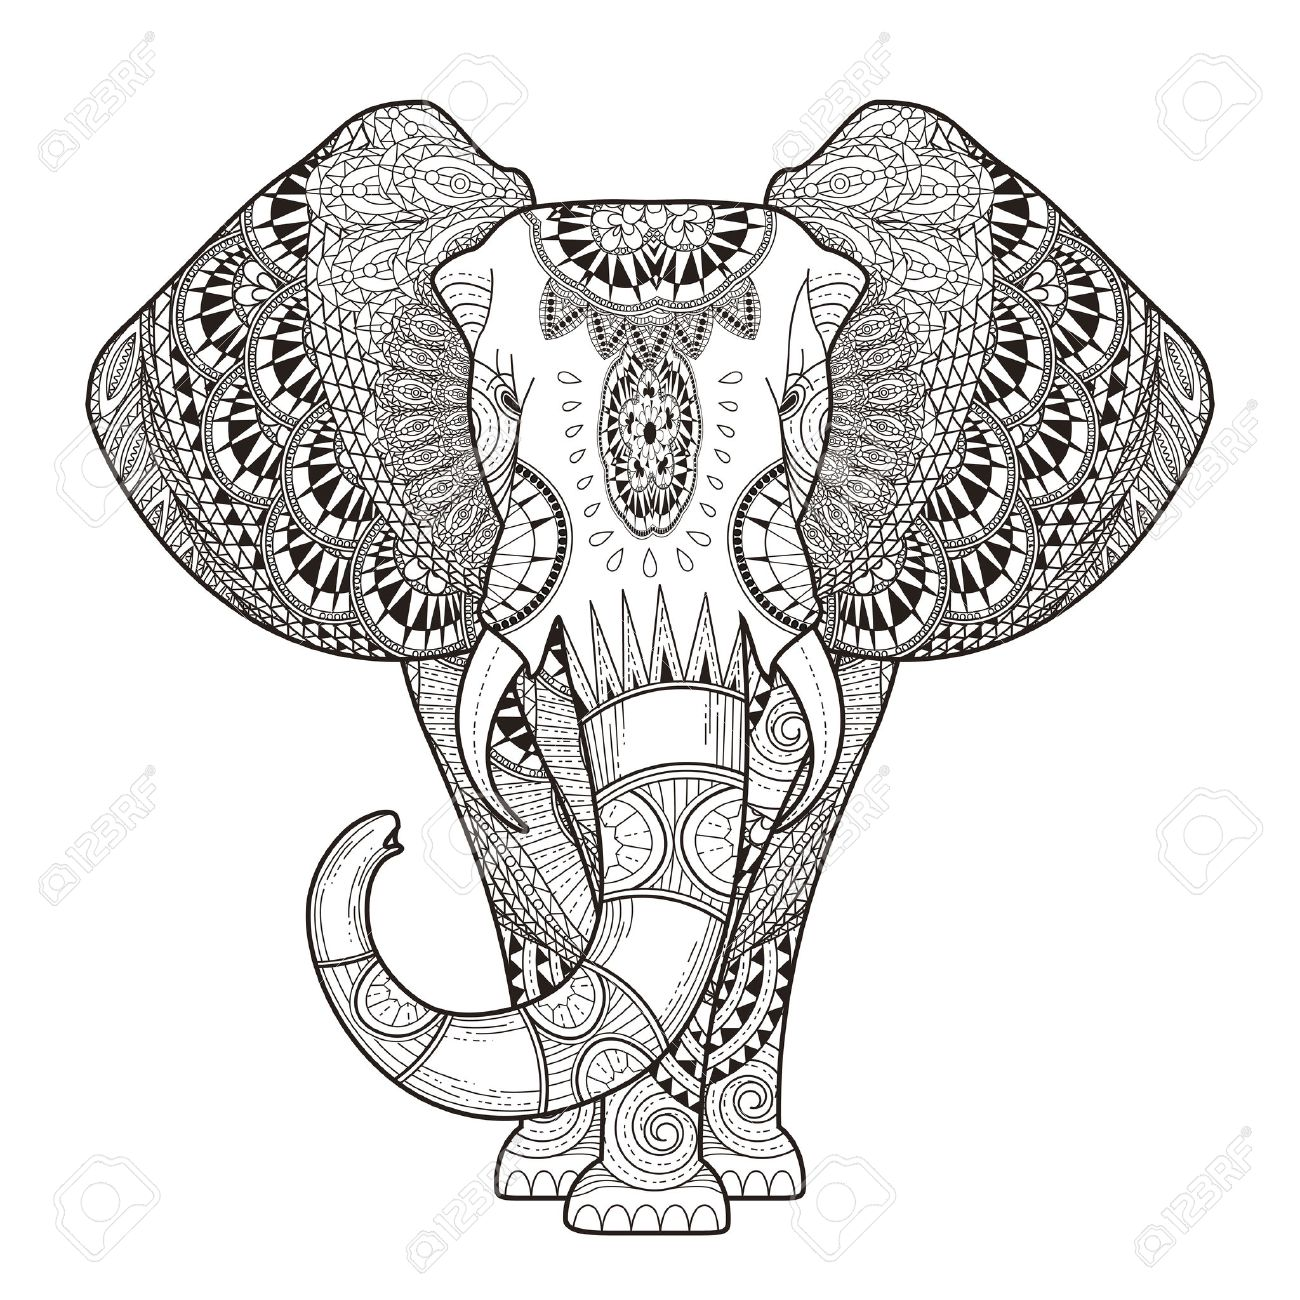 Graceful Elephant Coloring Page In Exquisite Style Royalty Free ...